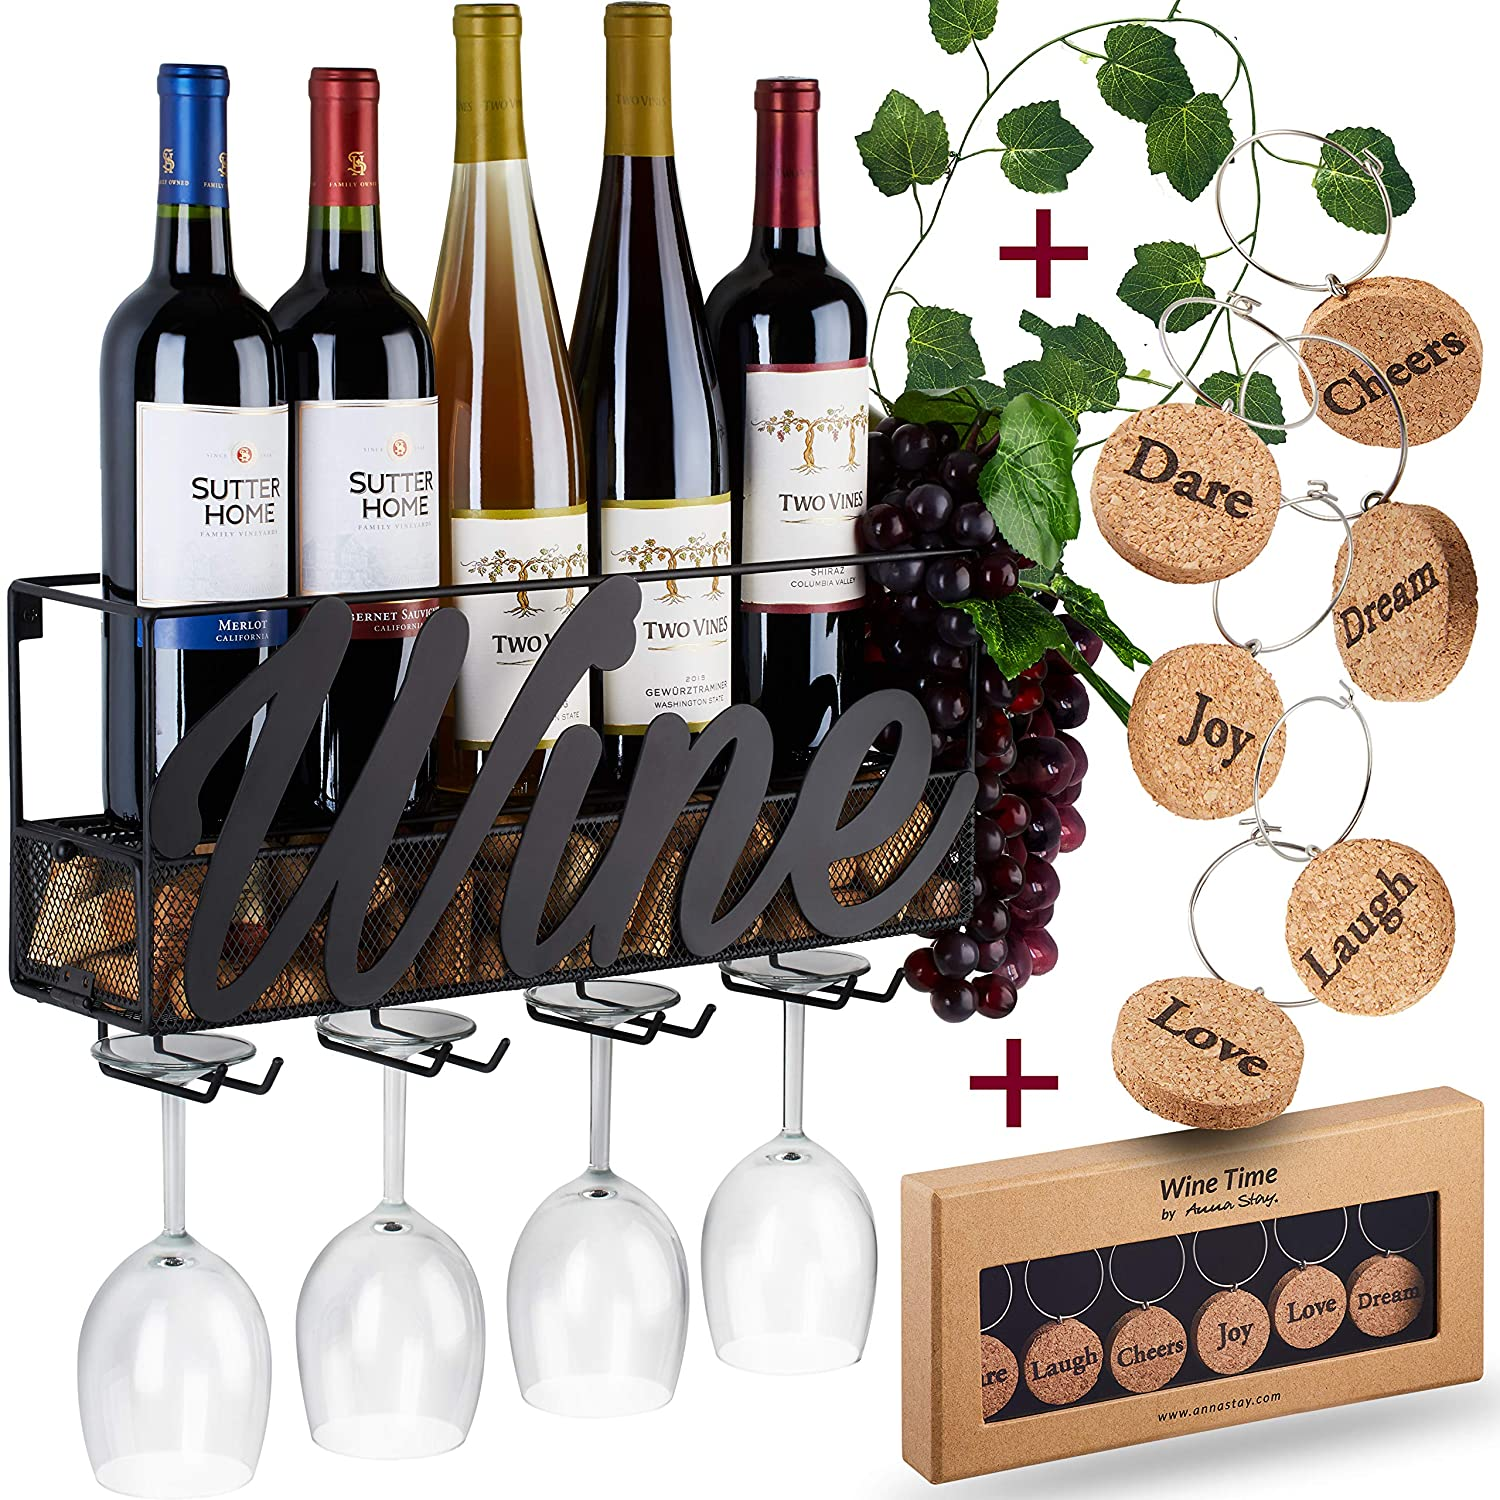 WALL MOUNTED WINE RACK: WINE LABEL